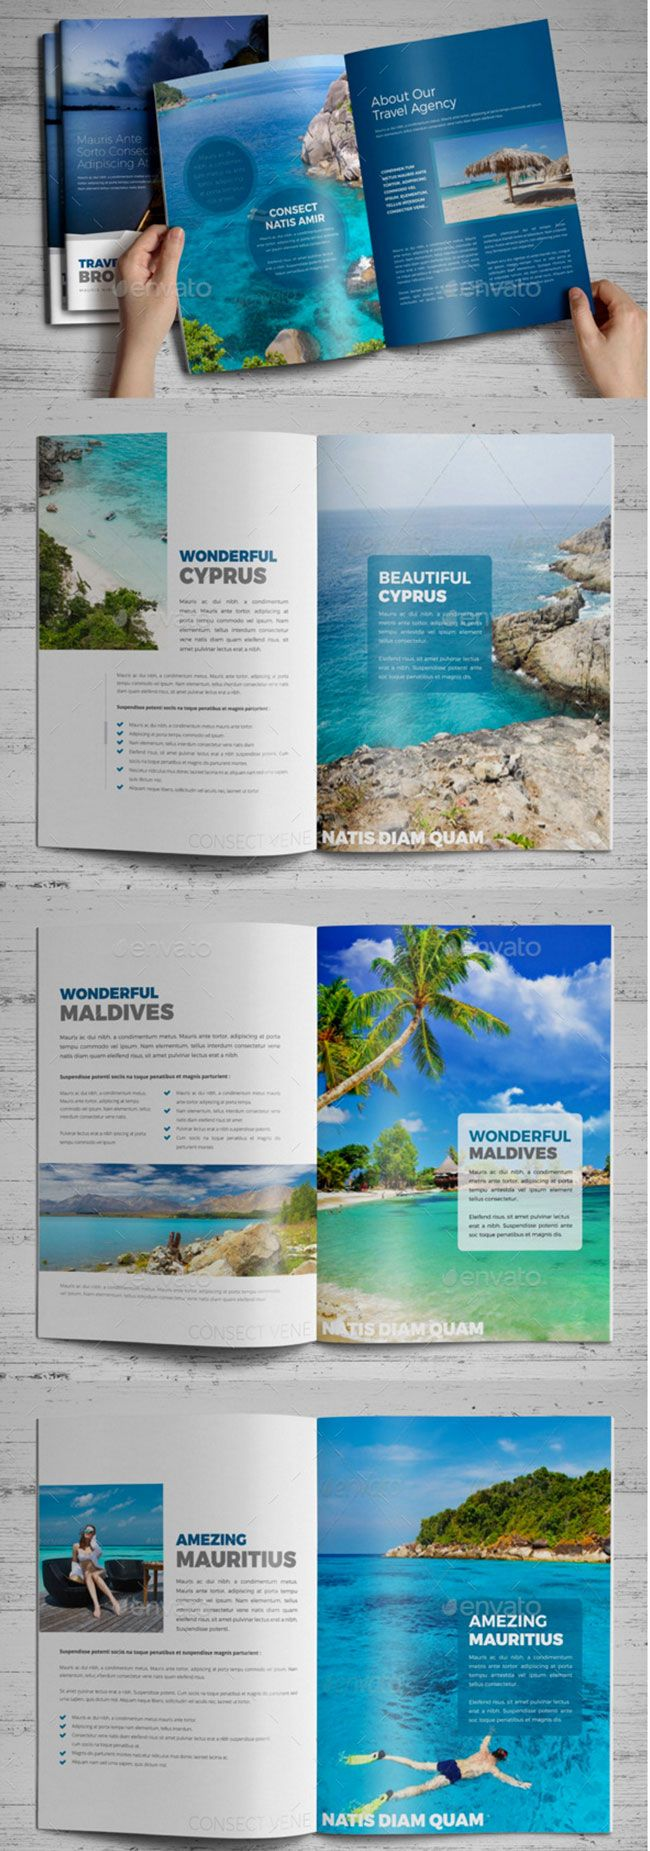 brochure examples for vacation